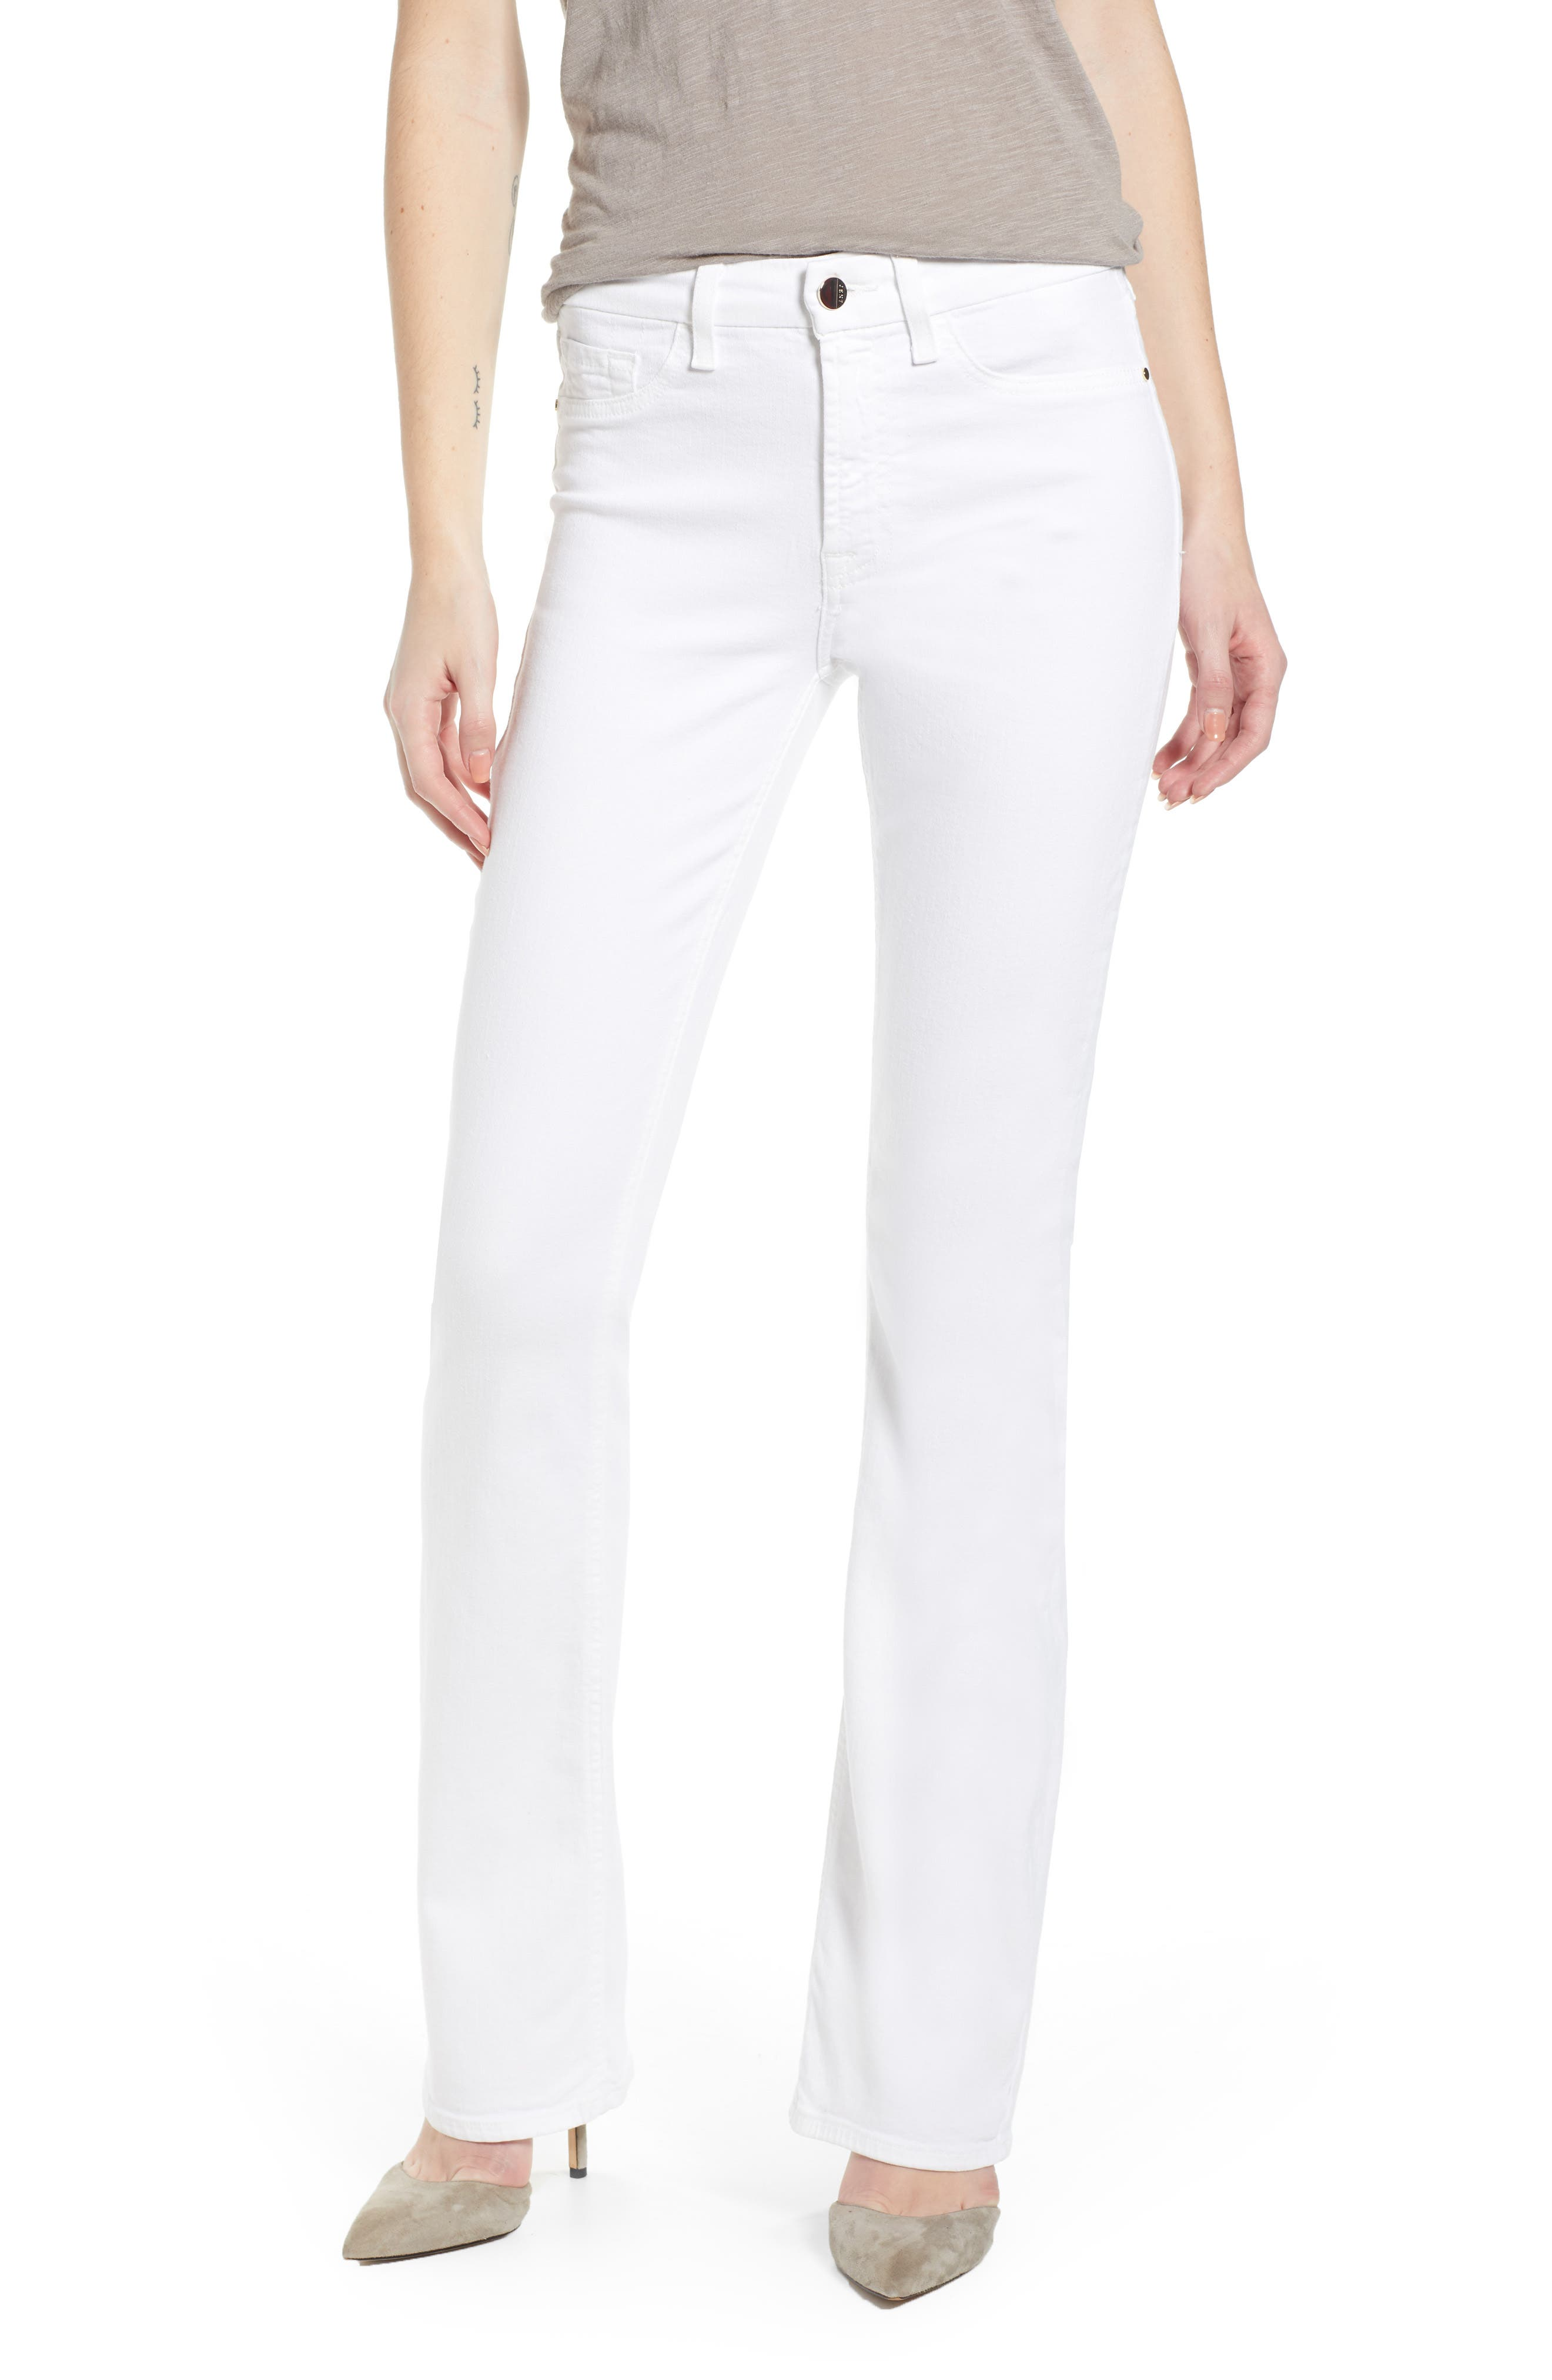 JEN7 BY 7 FOR ALL MANKIND Slim Bootcut Jeans, Main, color, WHITE